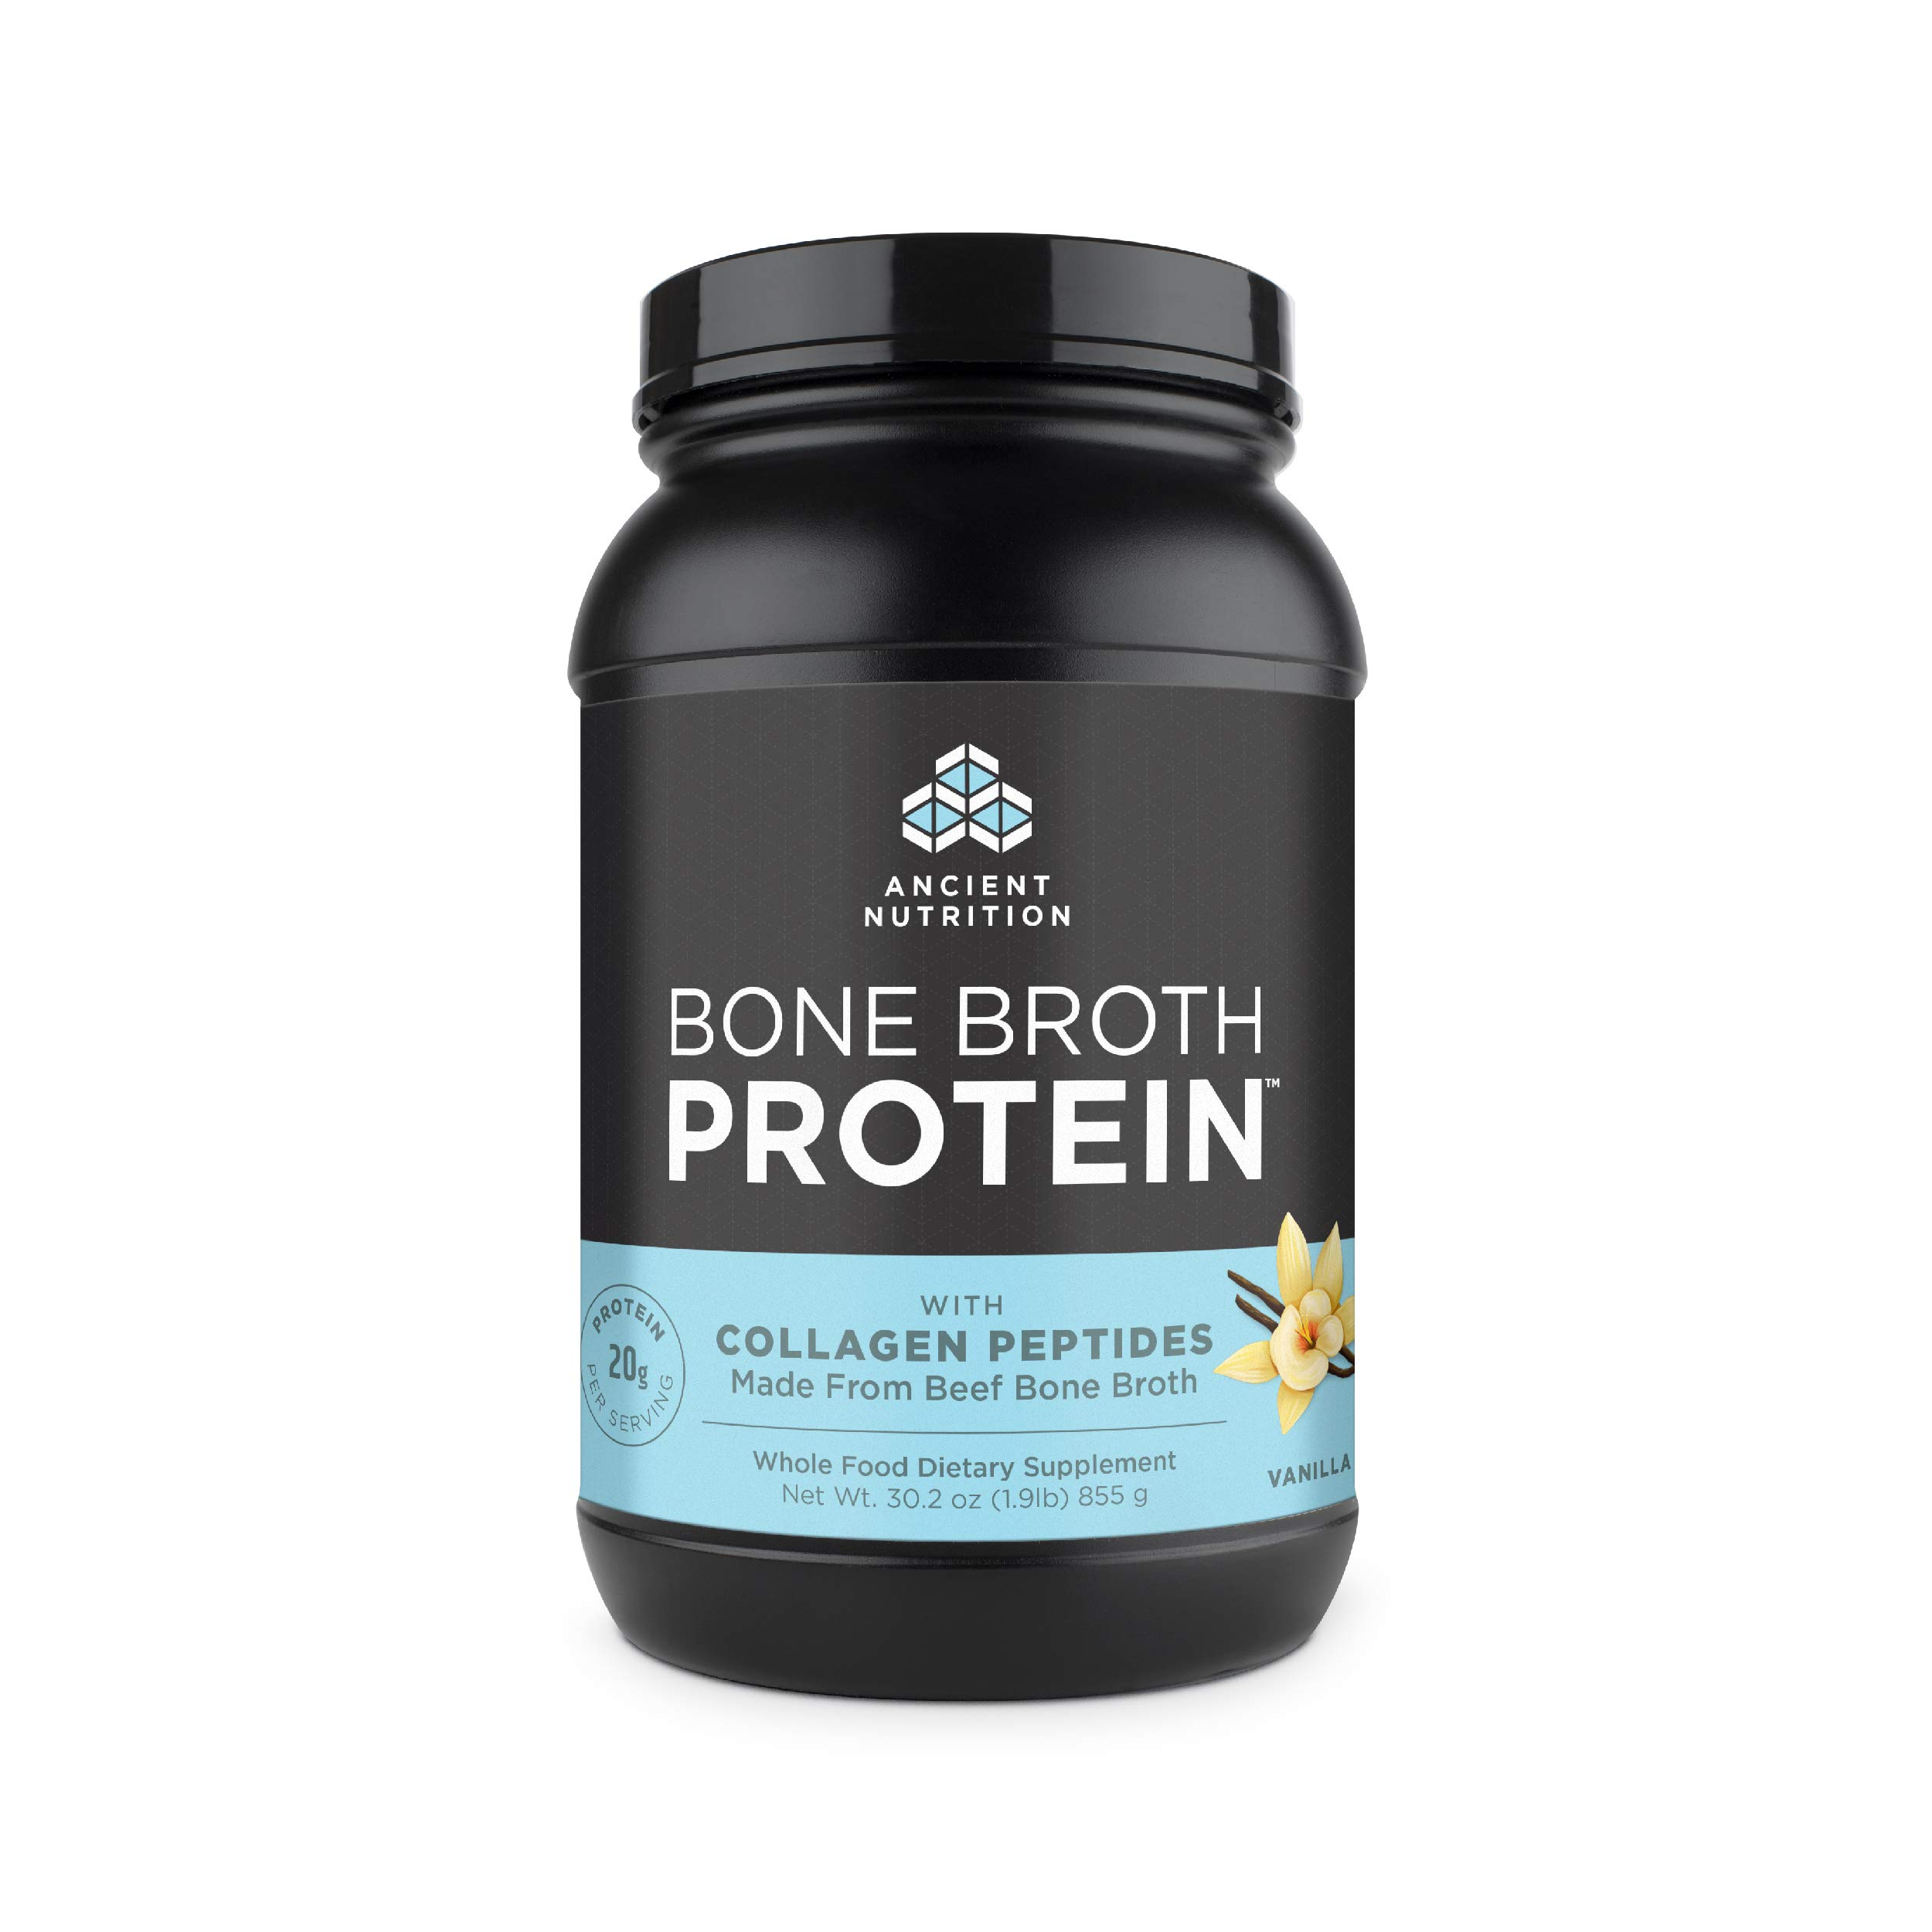 Ancient Nutrition Bone Broth Protein Powder, Vanilla Flavor, 30.2oz by Ancient Nutrition